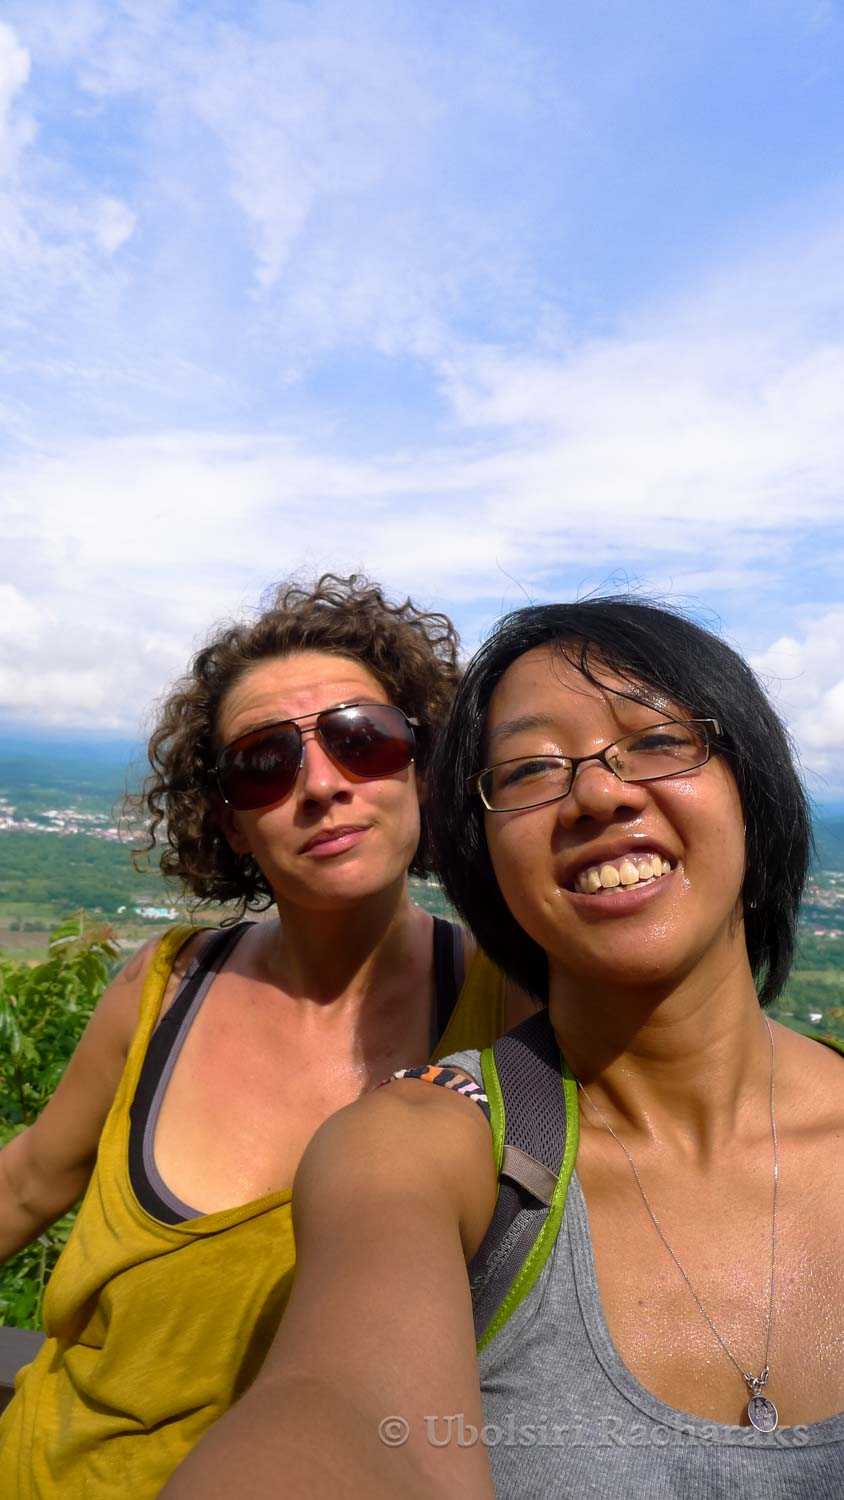 Selfie at the top of Phu Bo Bit National Park